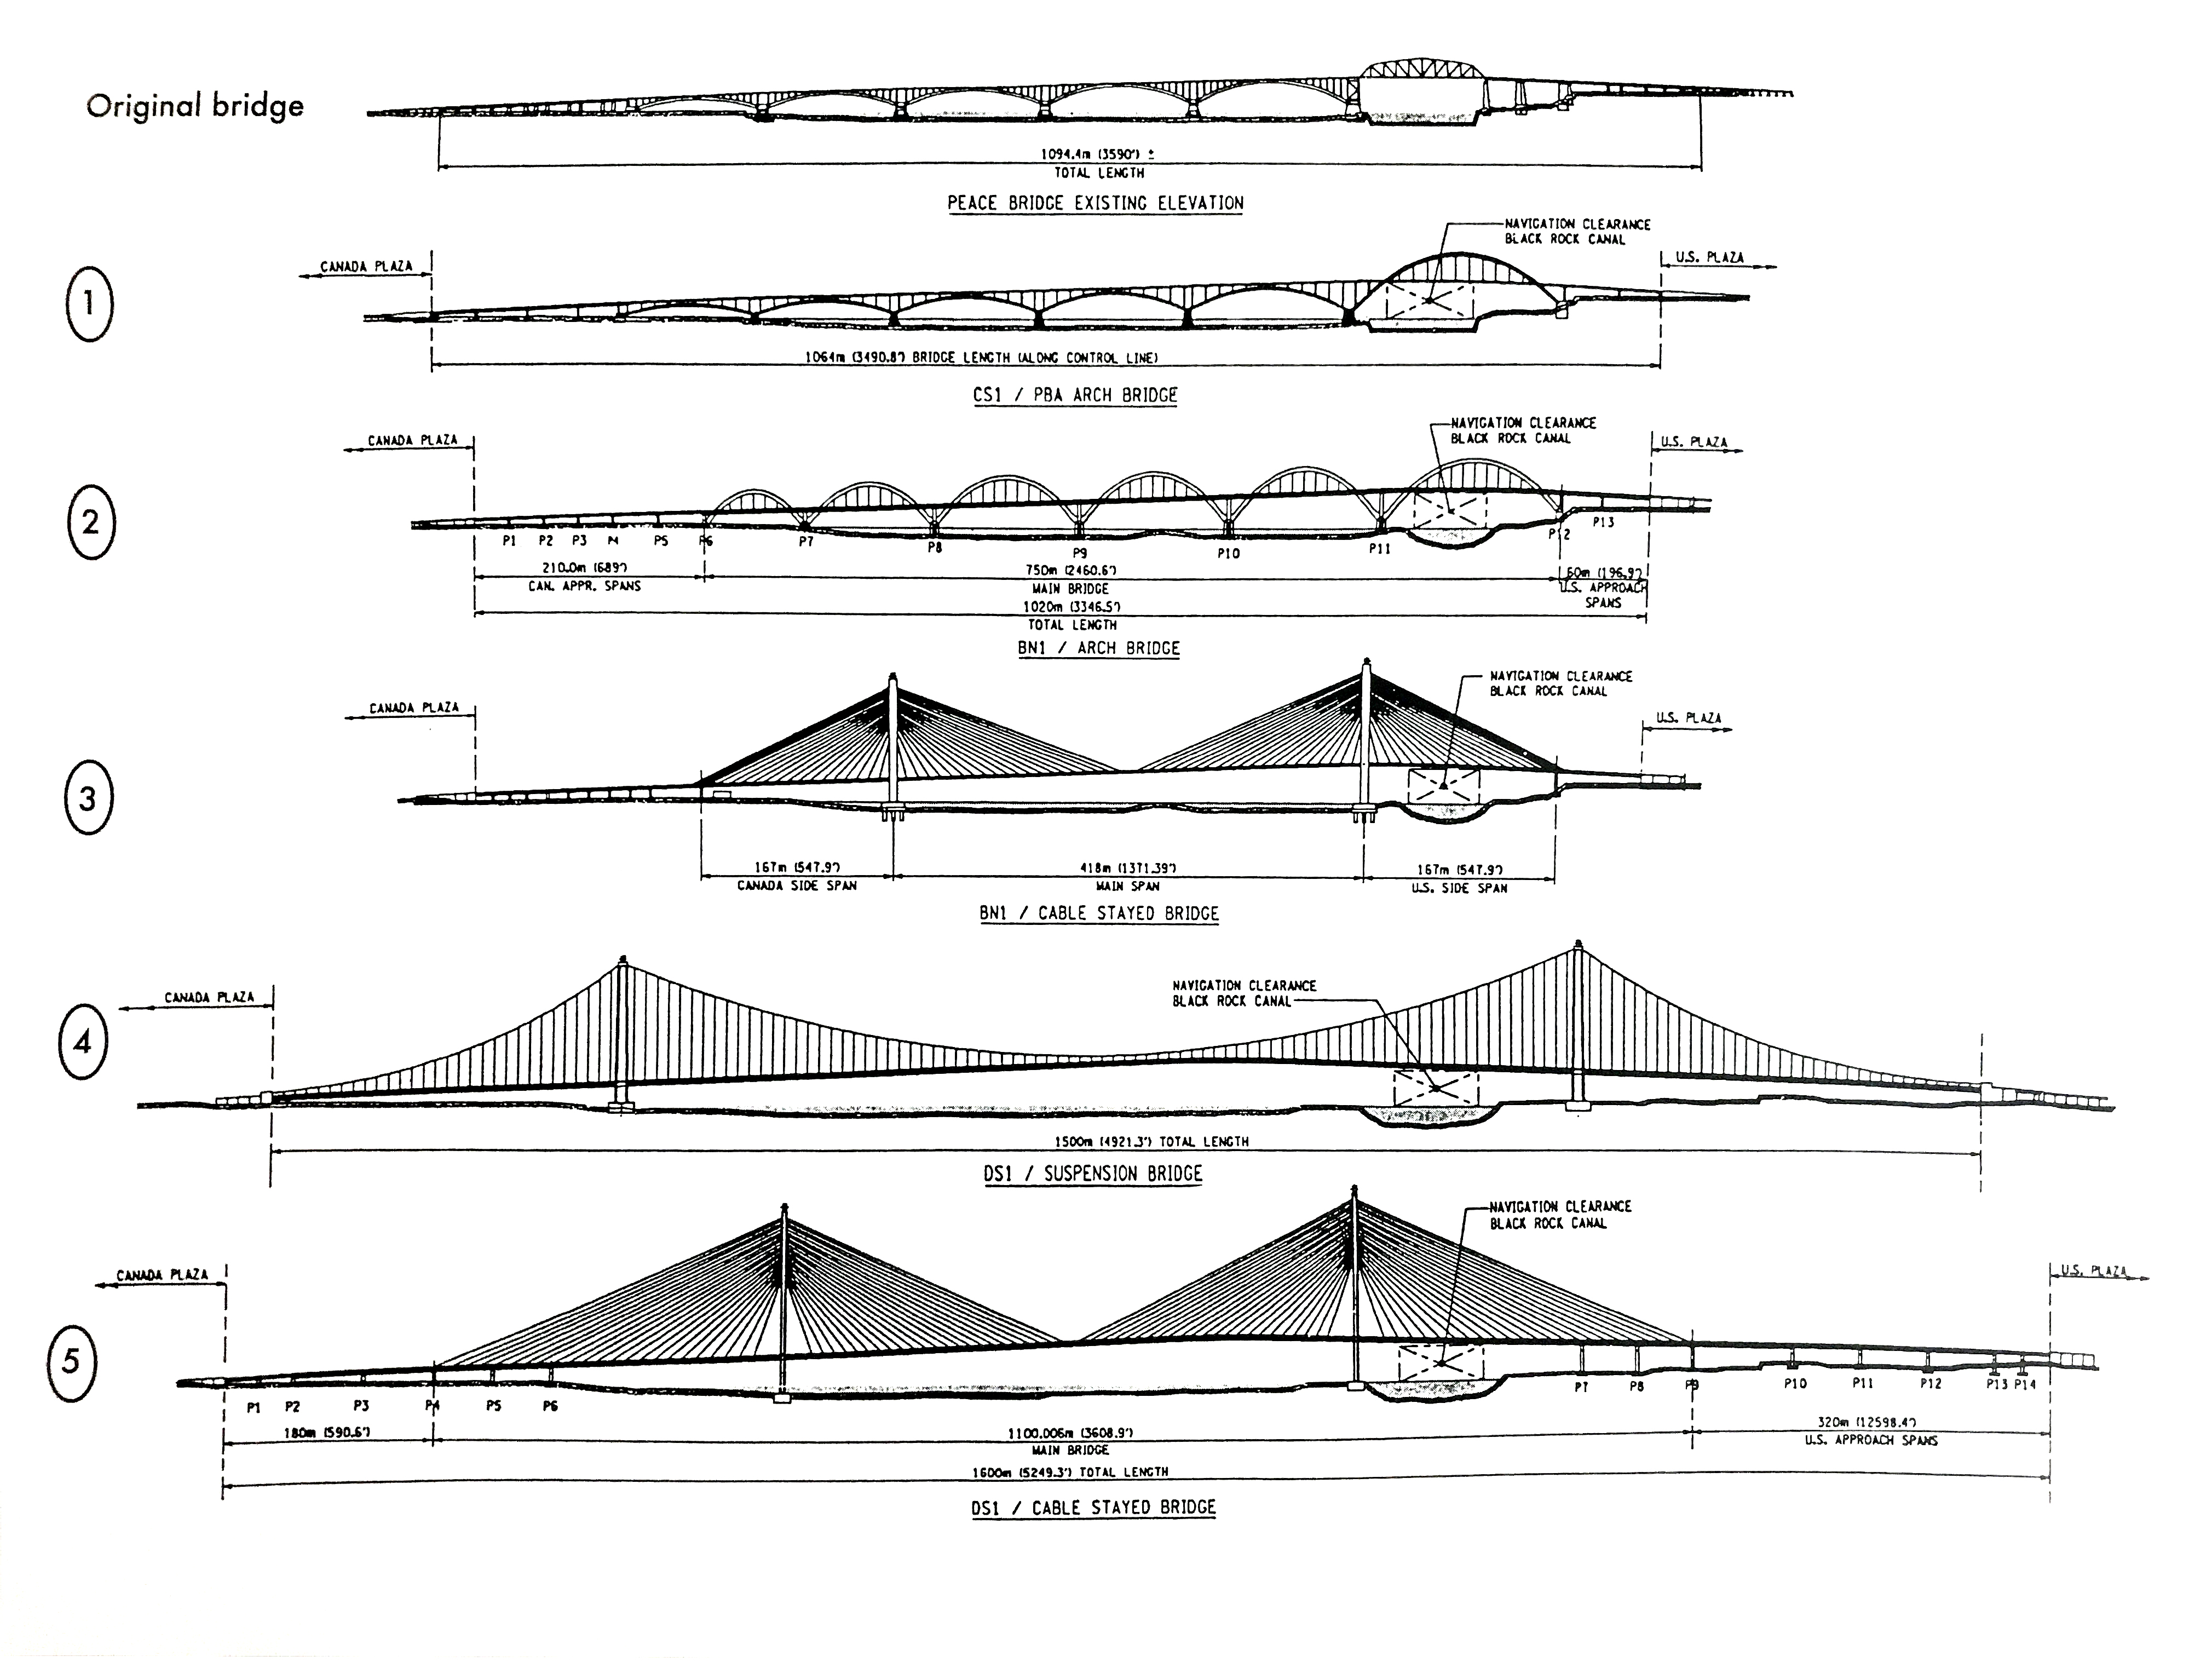 Five proposed designs for the Peace Bridge Replacement